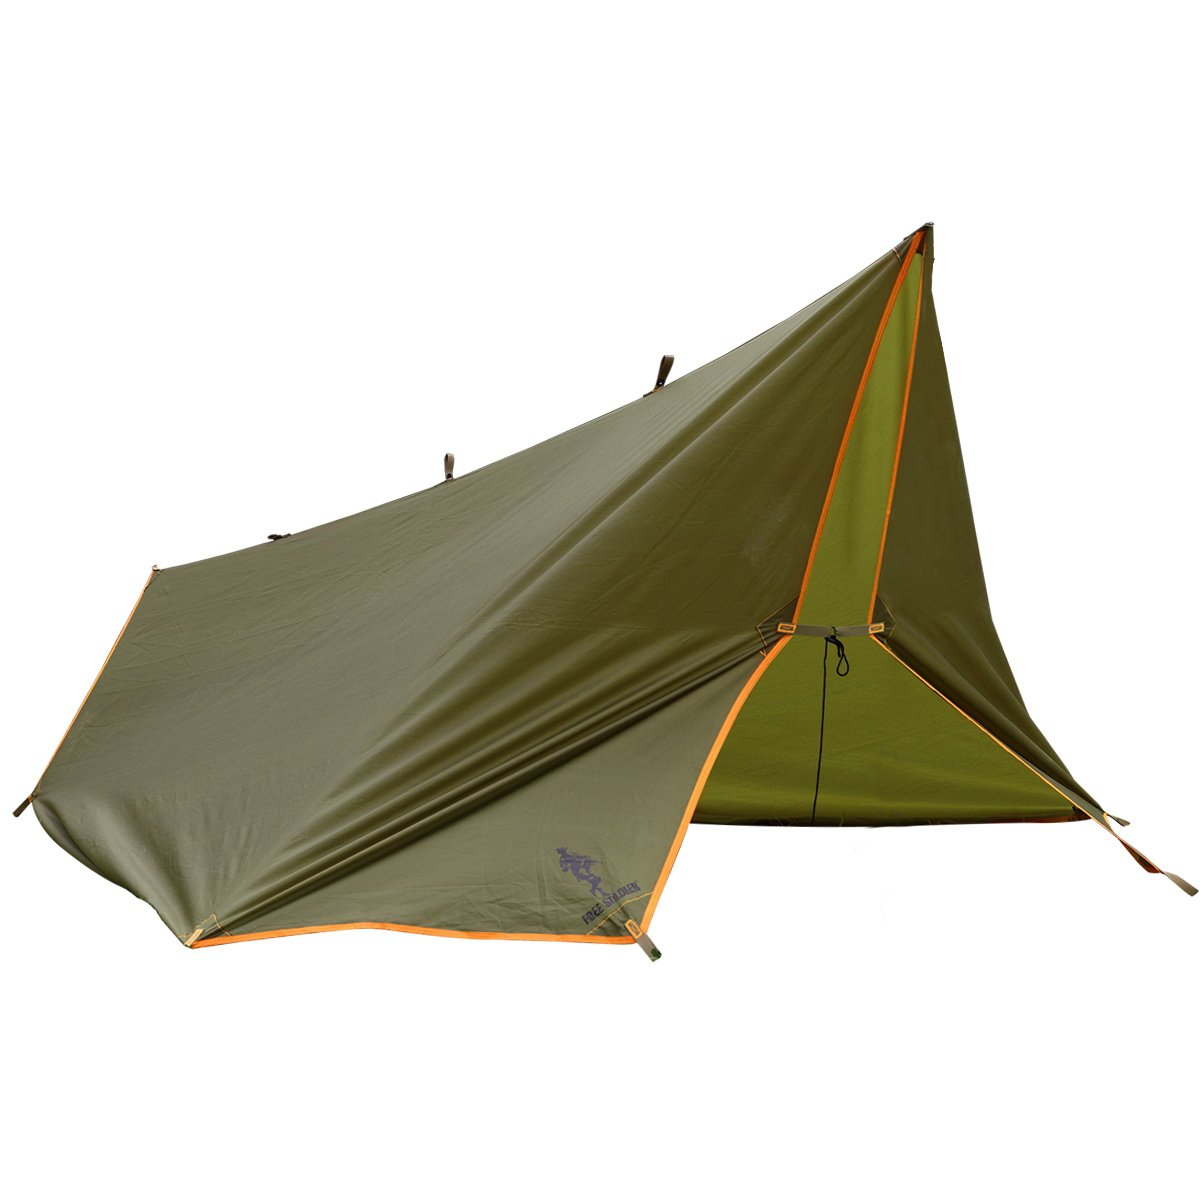 FREE SOLDIER Waterproof Portable Tarp Multifunctional Outdoor Camping Traveling Awning Backpacking Tarp Shelter Rain Tarp (Brown) by FREE SOLDIER